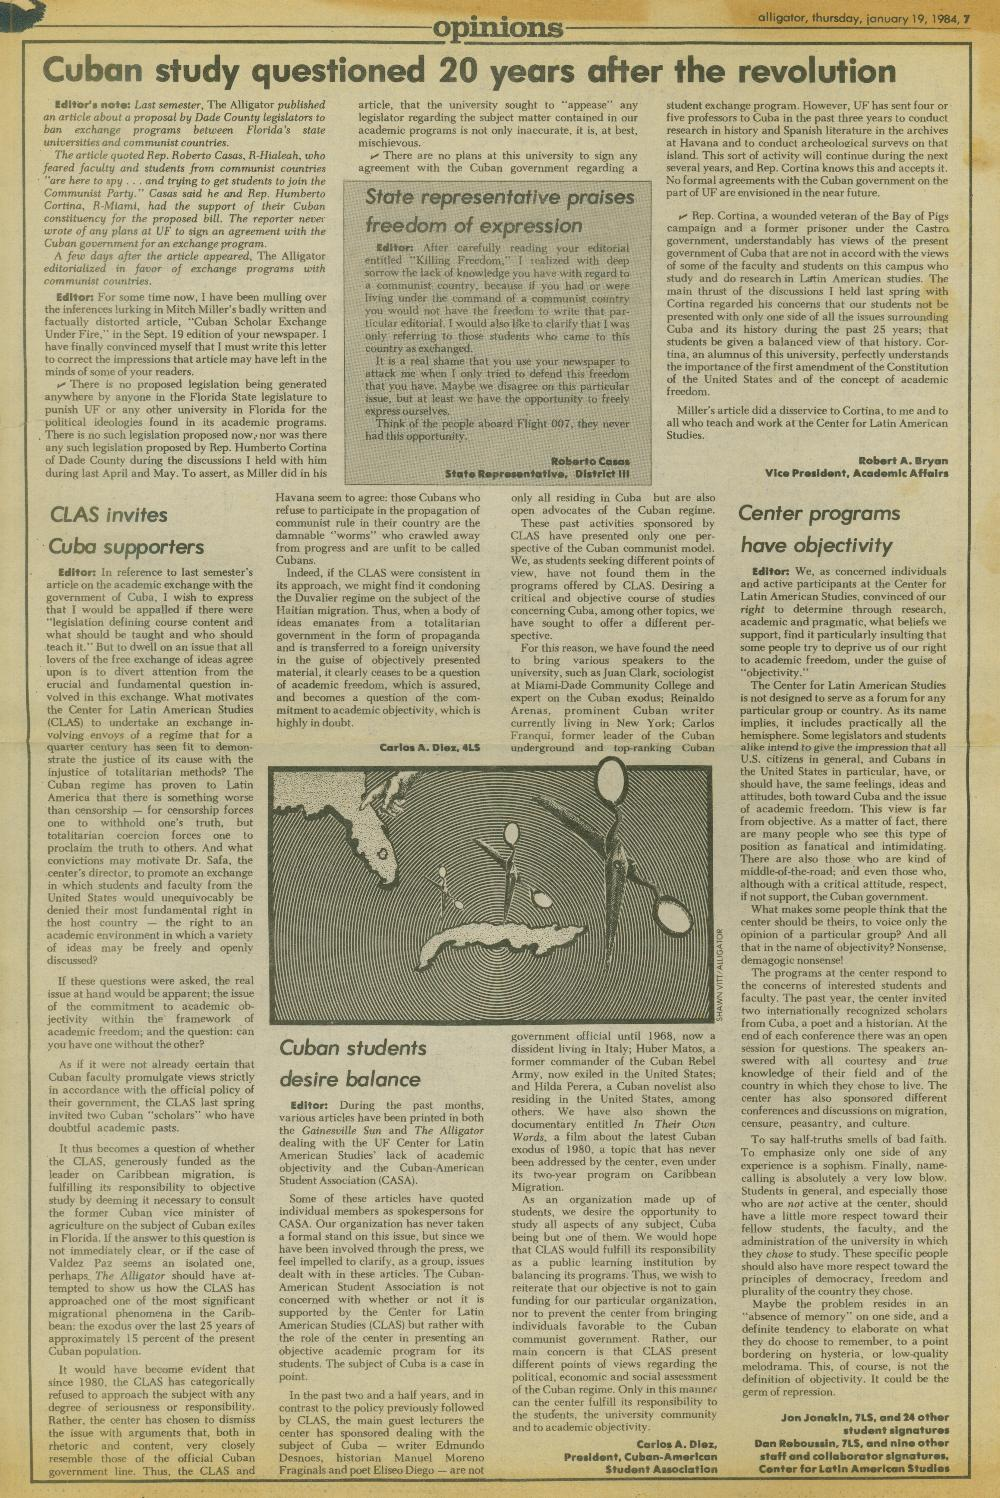 "Opinions page, Independent Florida Alligator, January 19, 1984 : rebuttle to ""Cuban Scholar Exchange Under Fire"" article published September 19, 1983. 1984."